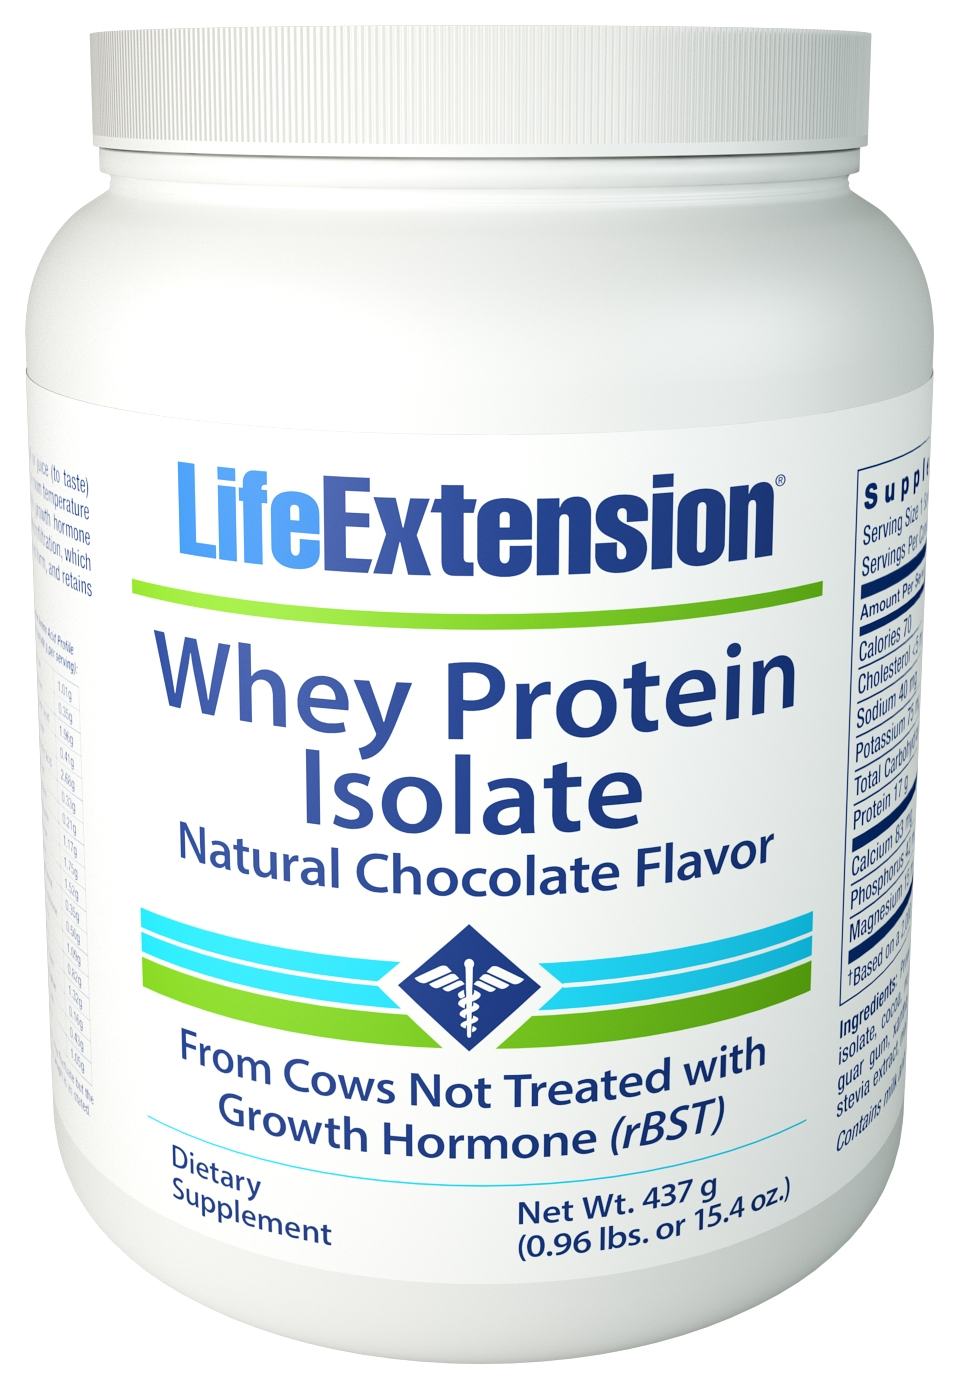 Whey Protein Isolate (Chocolate Flavor) 454 g (1 lb) by Life Extension